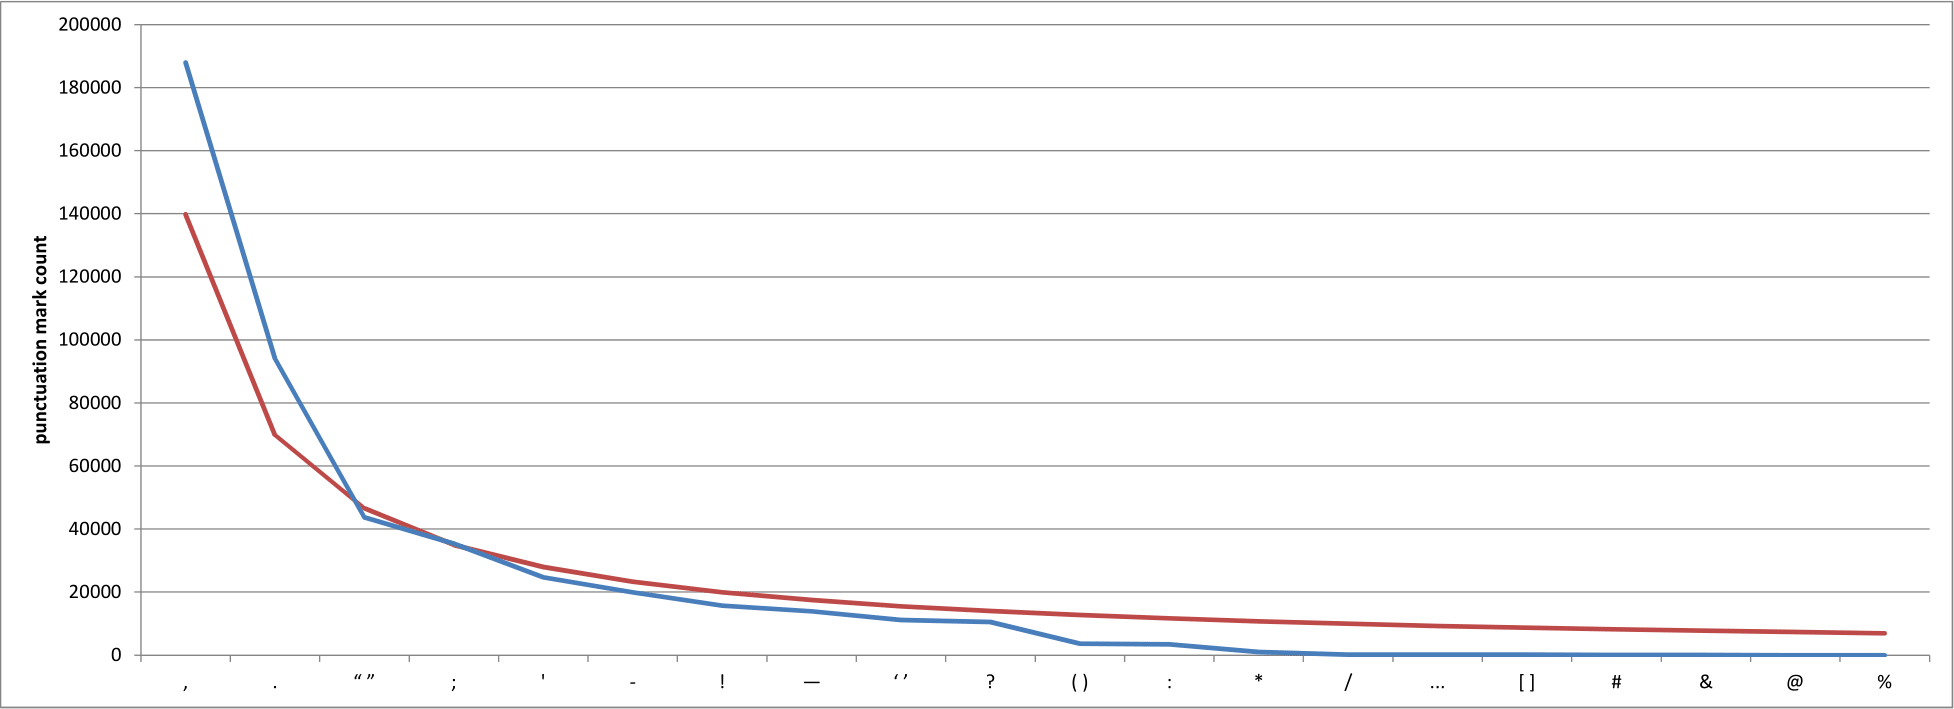 Punctuation mark counts (blue) in a selection of works from Project Gutenberg, ordered from most to least common. Also shown are the projected counts (green). (Image by the author.)